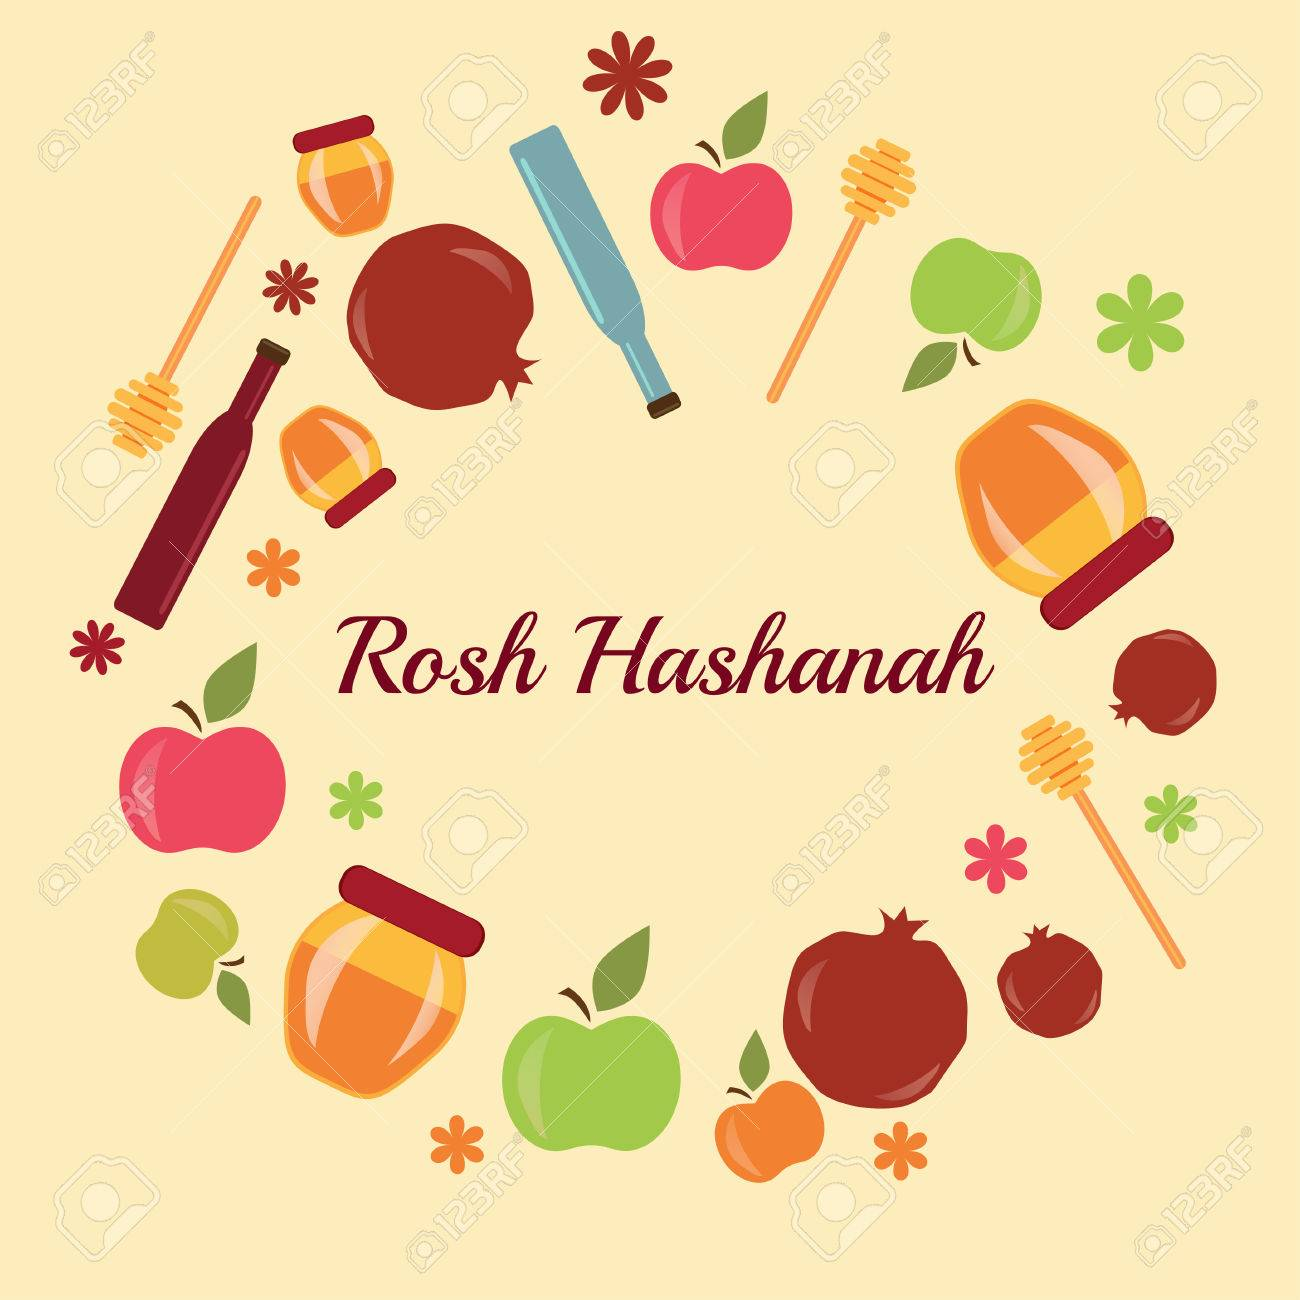 Rosh hashanah jewish new year greeting card set design with hand rosh hashanah jewish new year greeting card set design with hand drawing apple honey and pomegranate kristyandbryce Choice Image